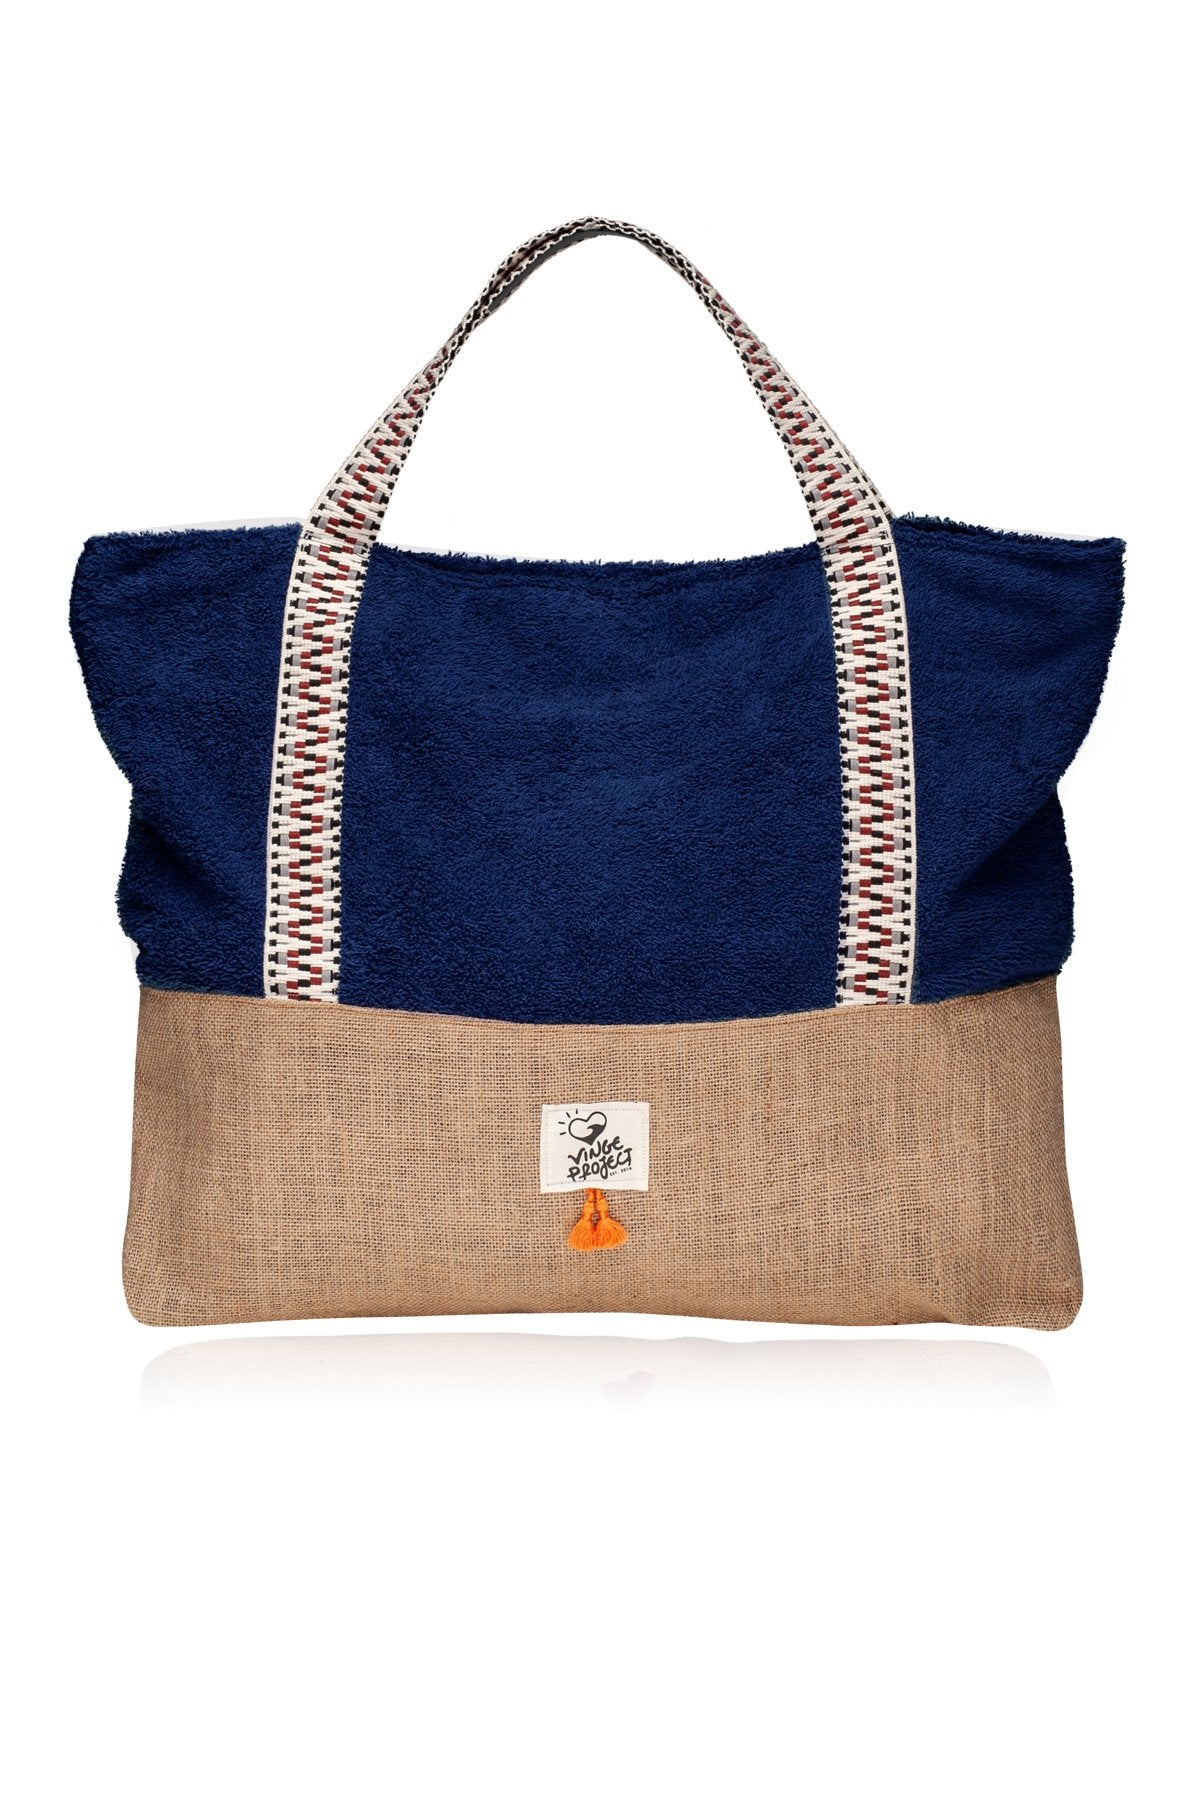 Sailor - Oversized Beach Bag